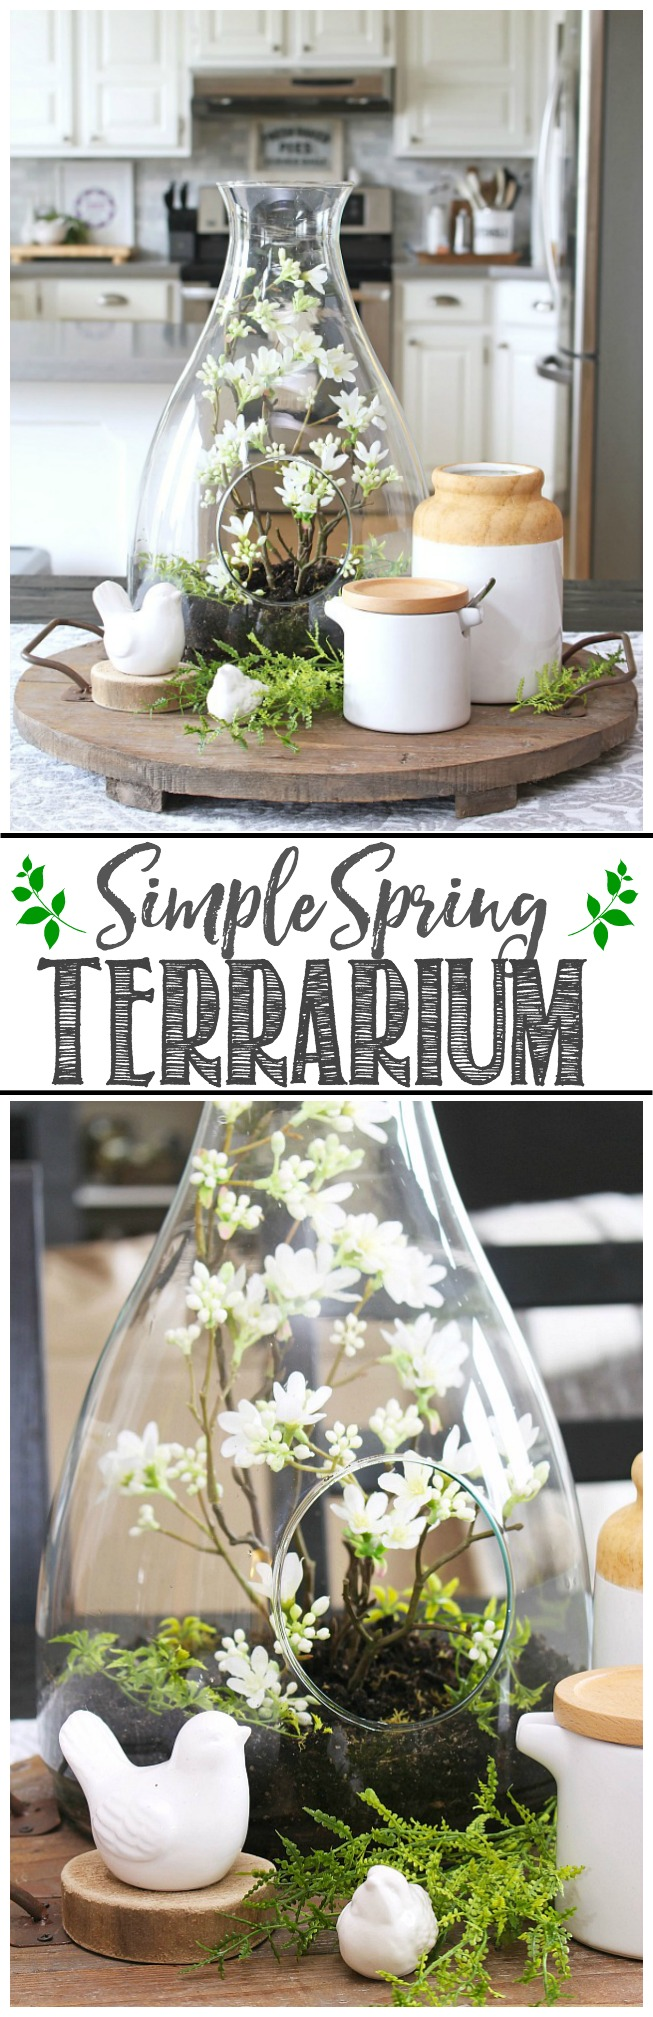 DIY spring terrarium for a spring centerpiece.